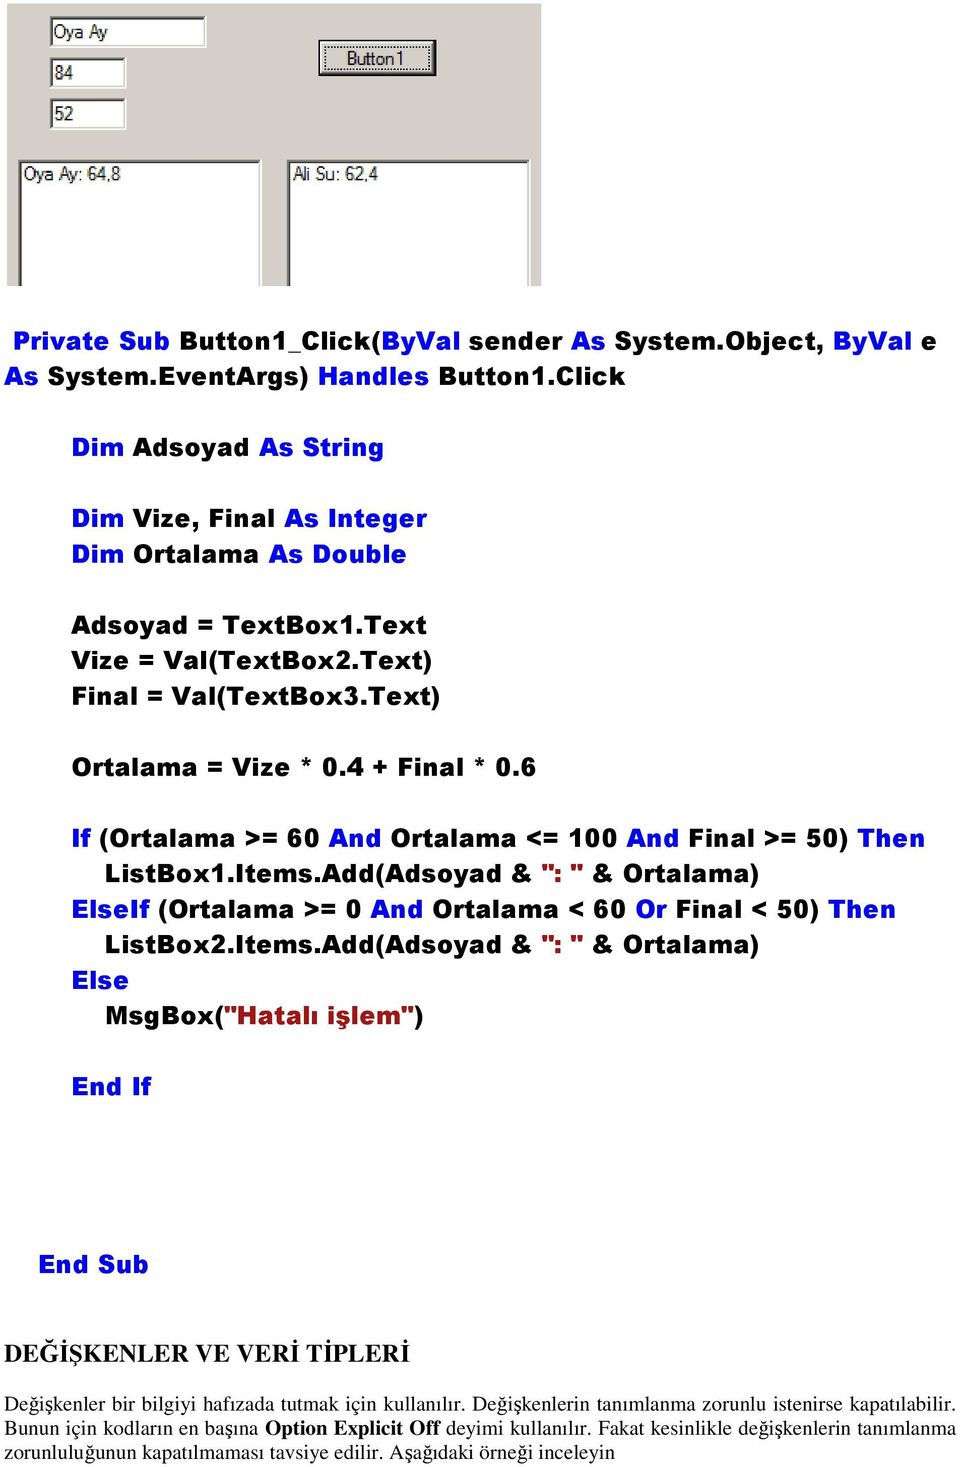 "Add(Adsoyad & "": "" & Ortalama) ElseIf (Ortalama >= 0 And Ortalama < 60 Or Final < 50) Then ListBox2.Items."